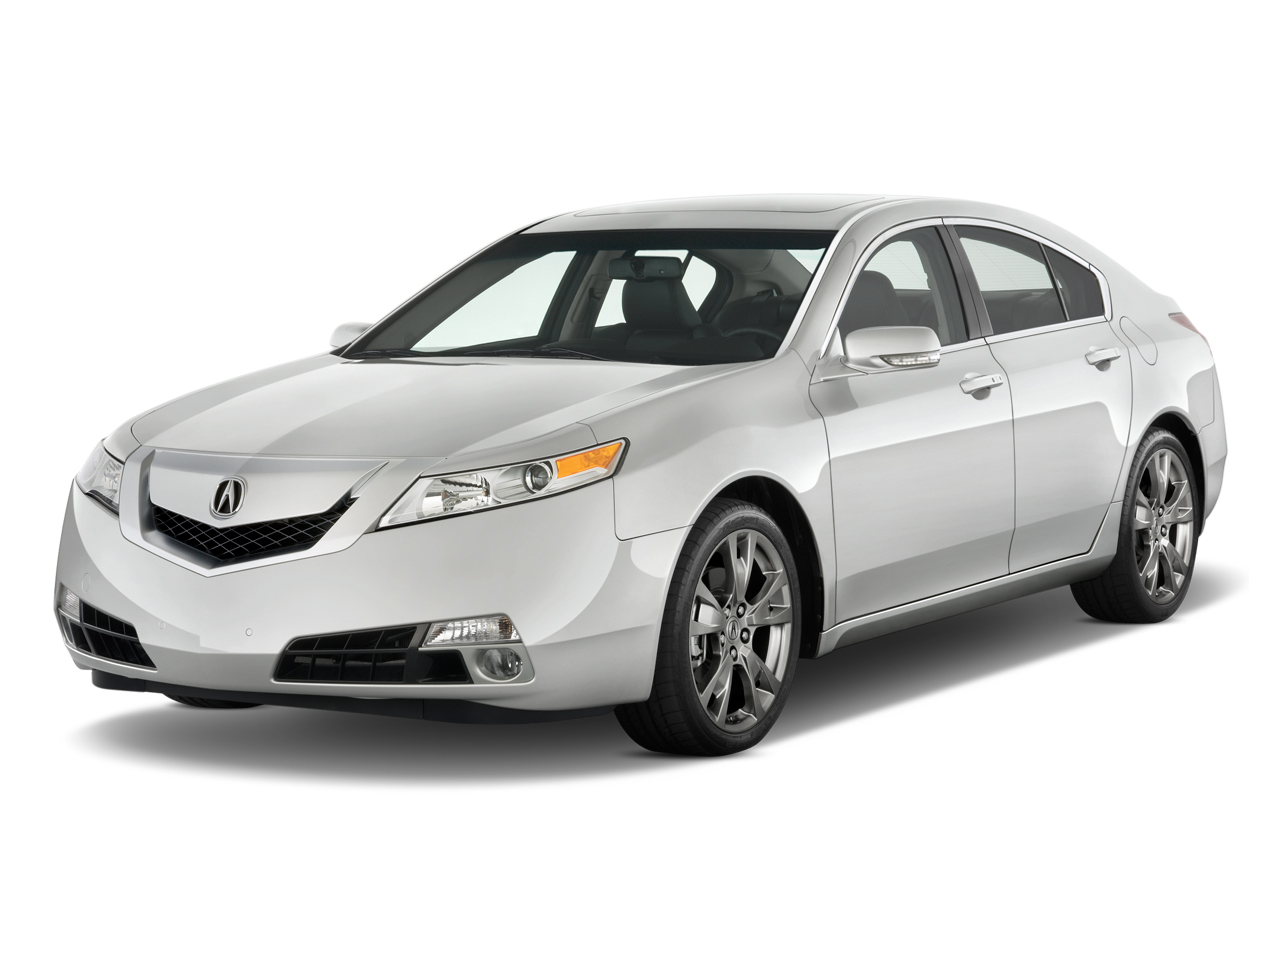 2010 acura tl review ratings specs prices and photos. Black Bedroom Furniture Sets. Home Design Ideas